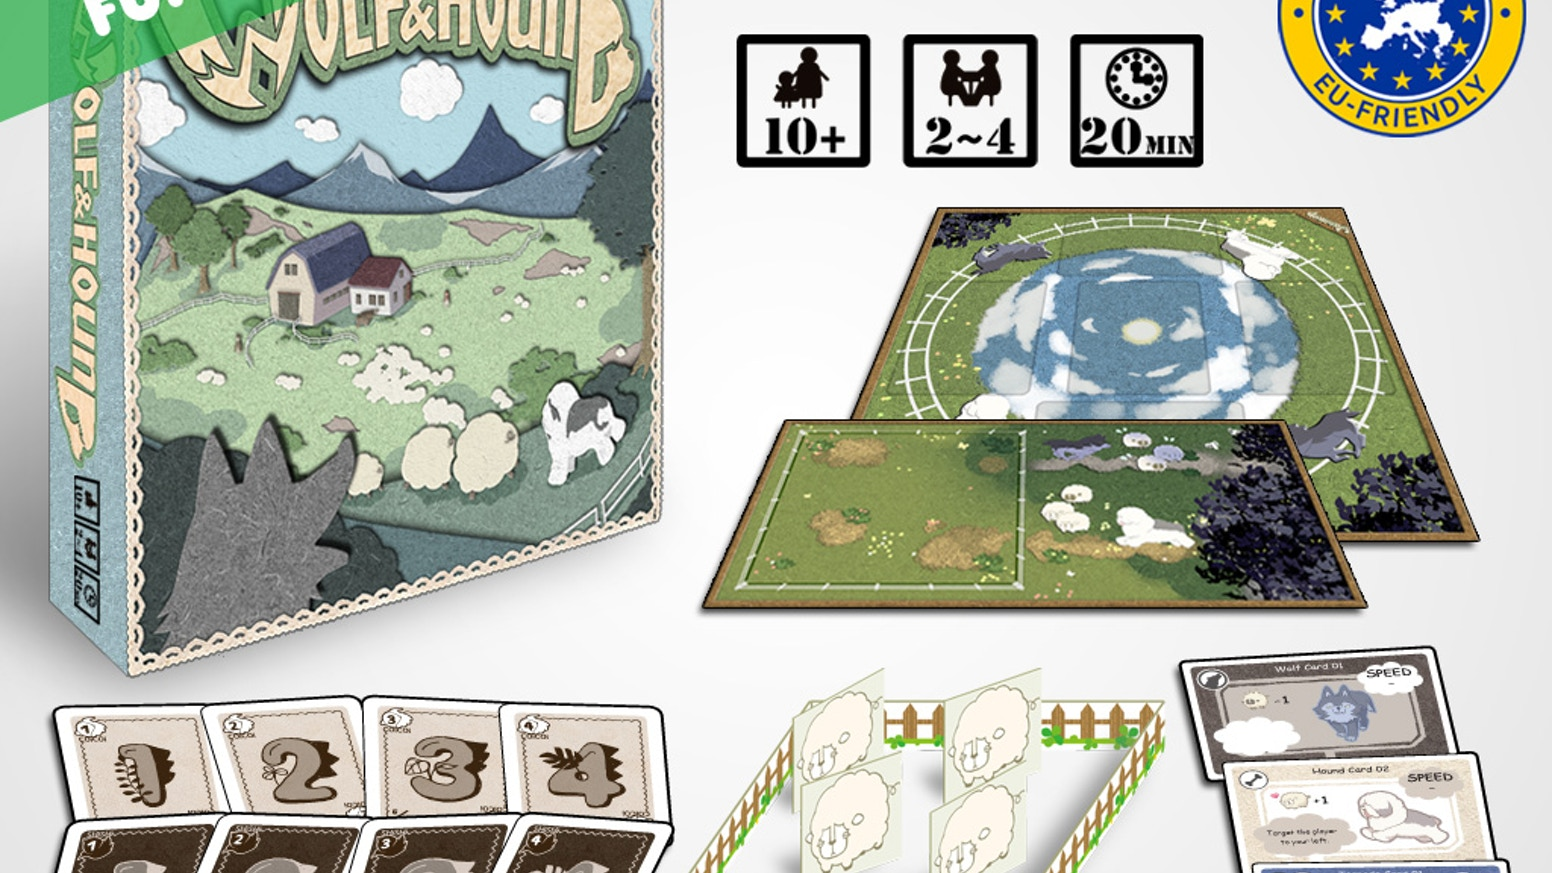 A partnership board game for 2-4. Save your sheep from being chased away by hungry wolves! Use your hound to bring the sheep back!